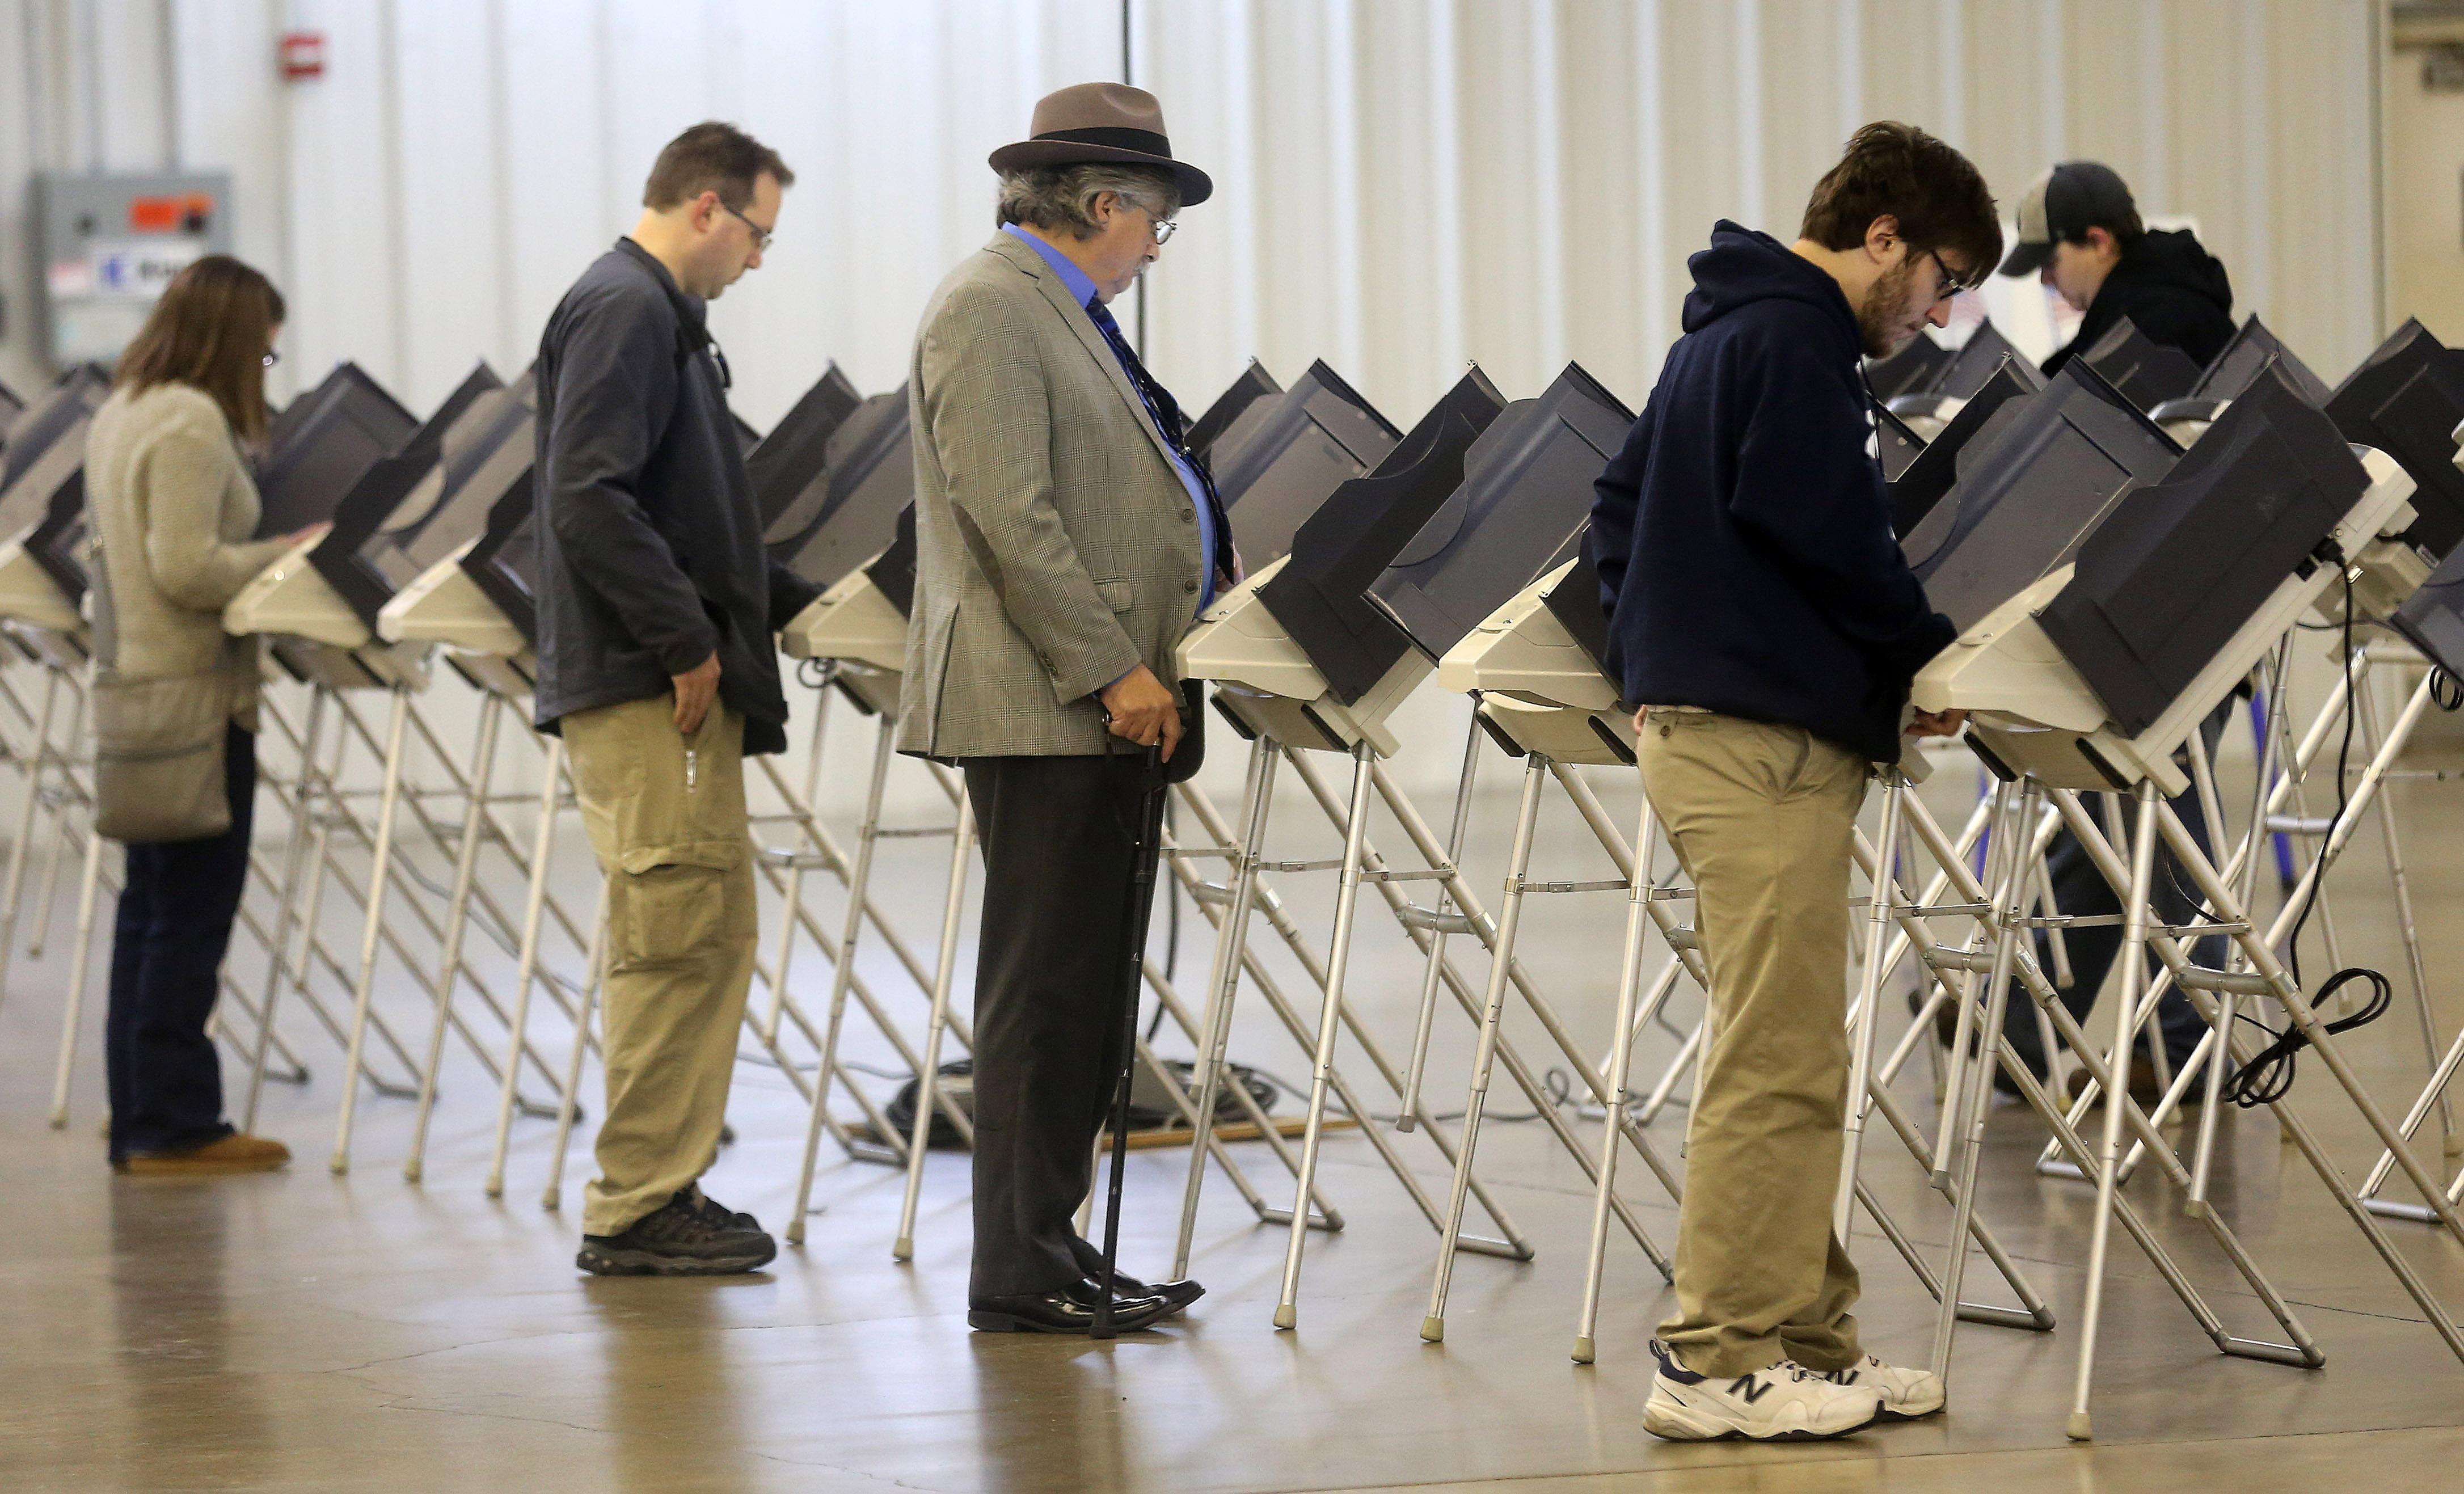 Voters cast their votes during the U.S. presidential election in Medina, Ohio, U.S. November 8, 2016.